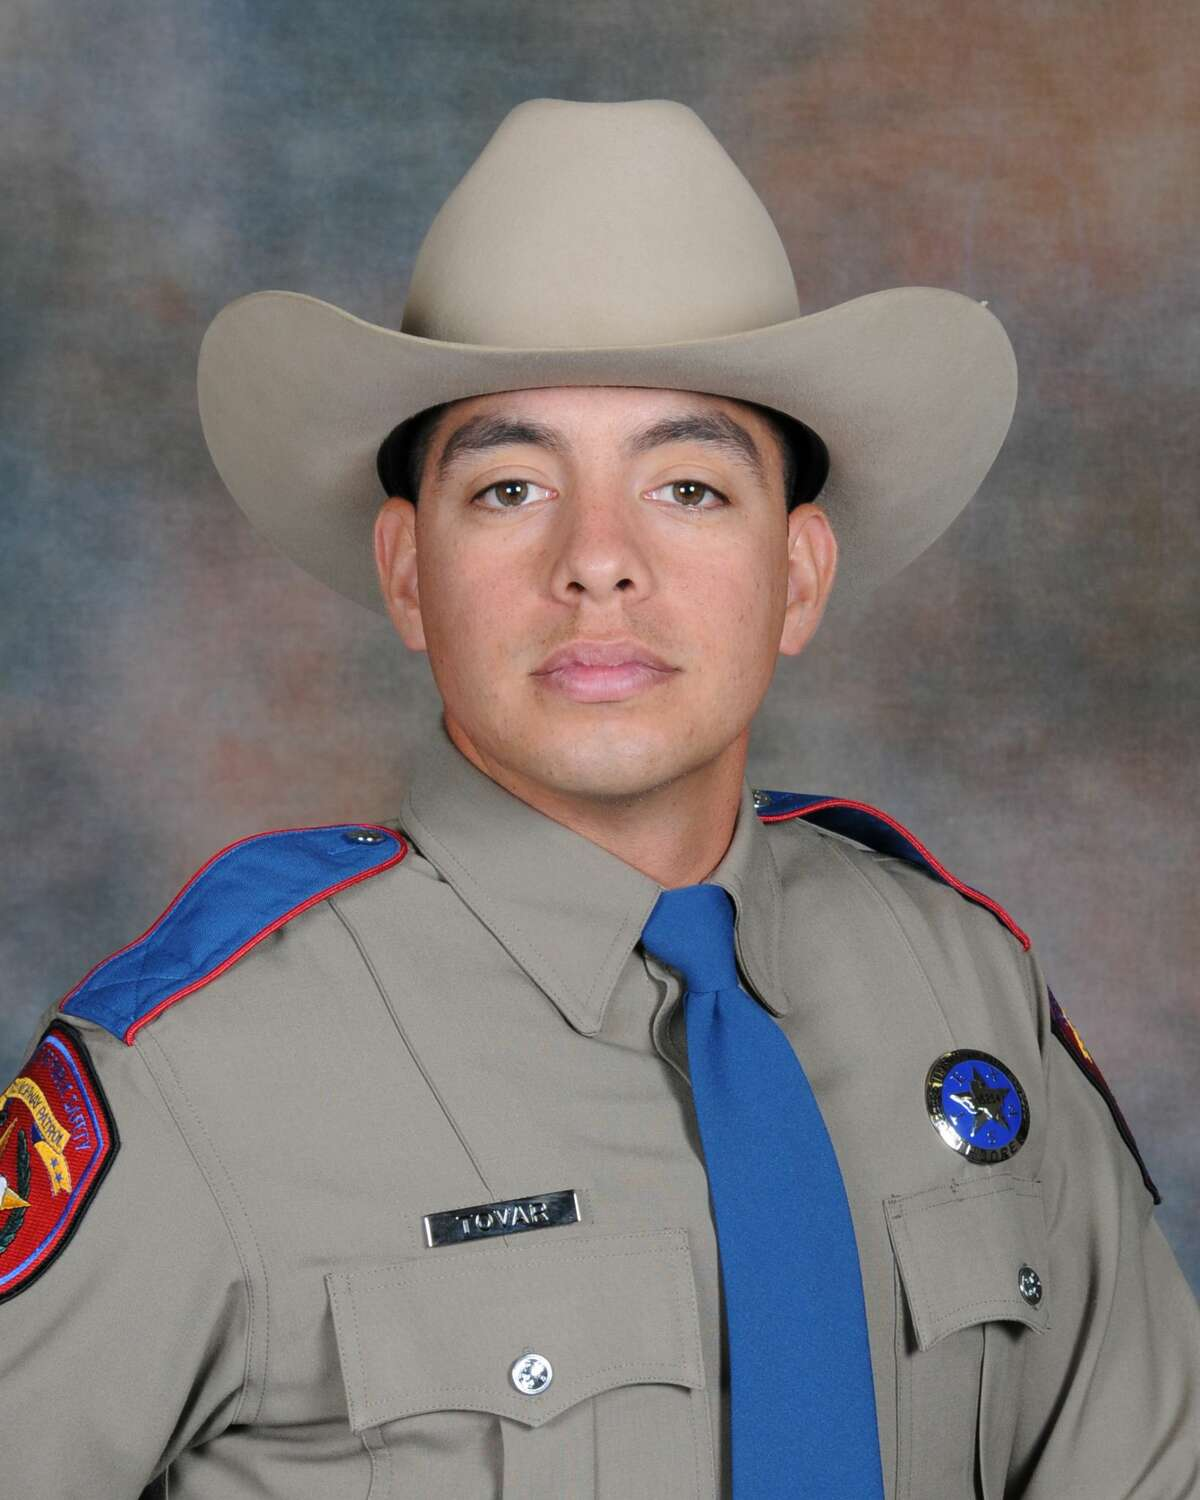 Trooper Juan Rojas Tovar has been released from the hospital.